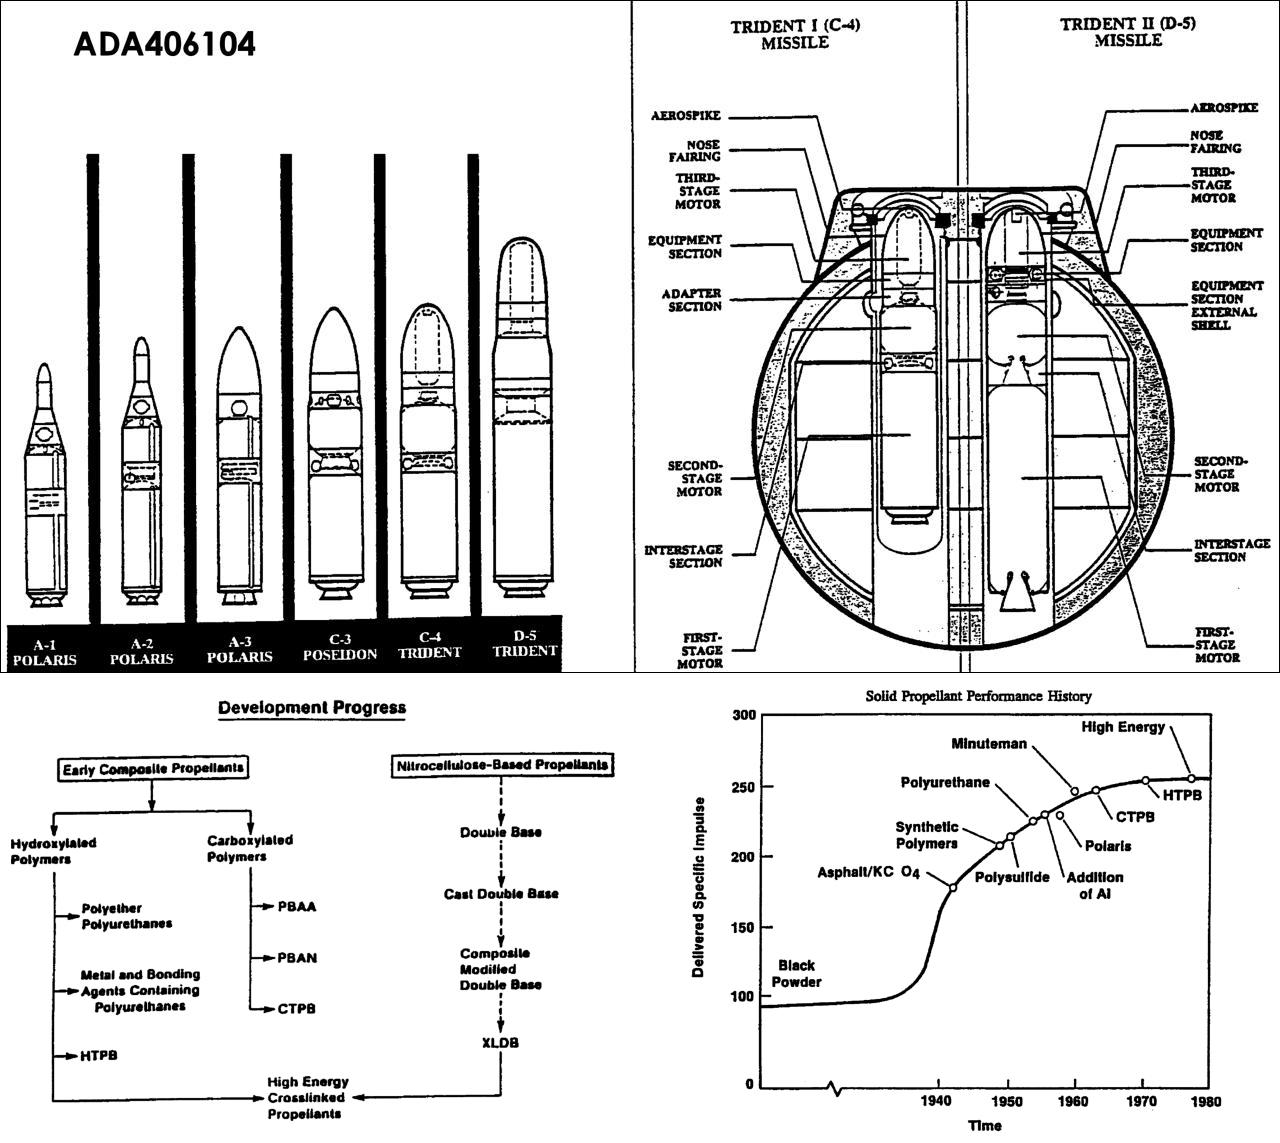 Credible nuclear weapons capabilities and effects for real